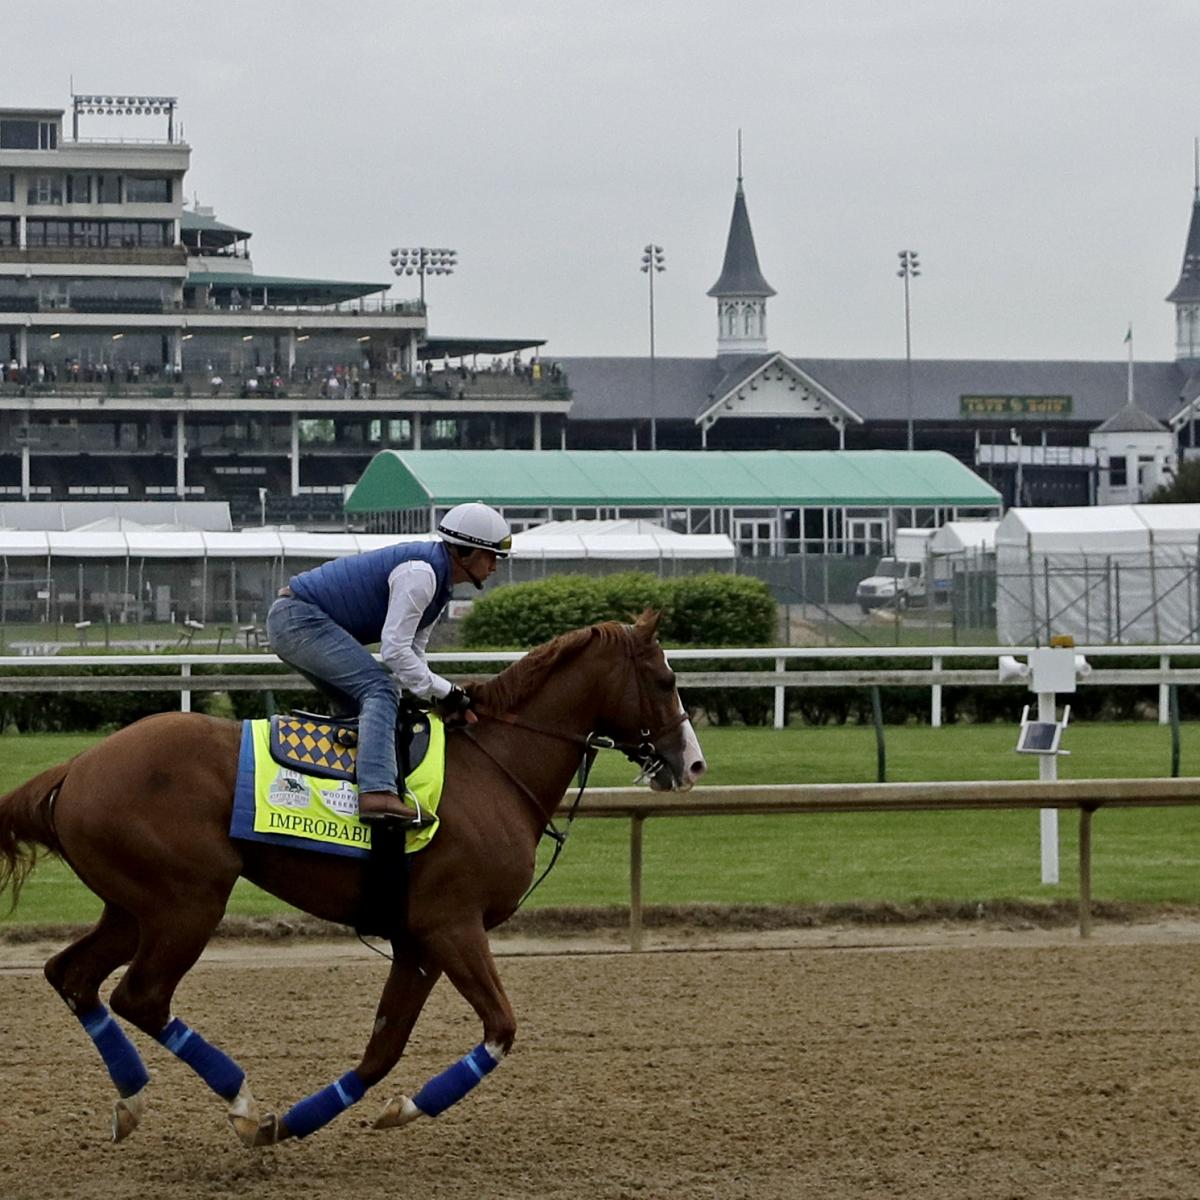 QnA VBage Kentucky Derby Picks 2019: Predictions and Odds for All Horses in the Lineup